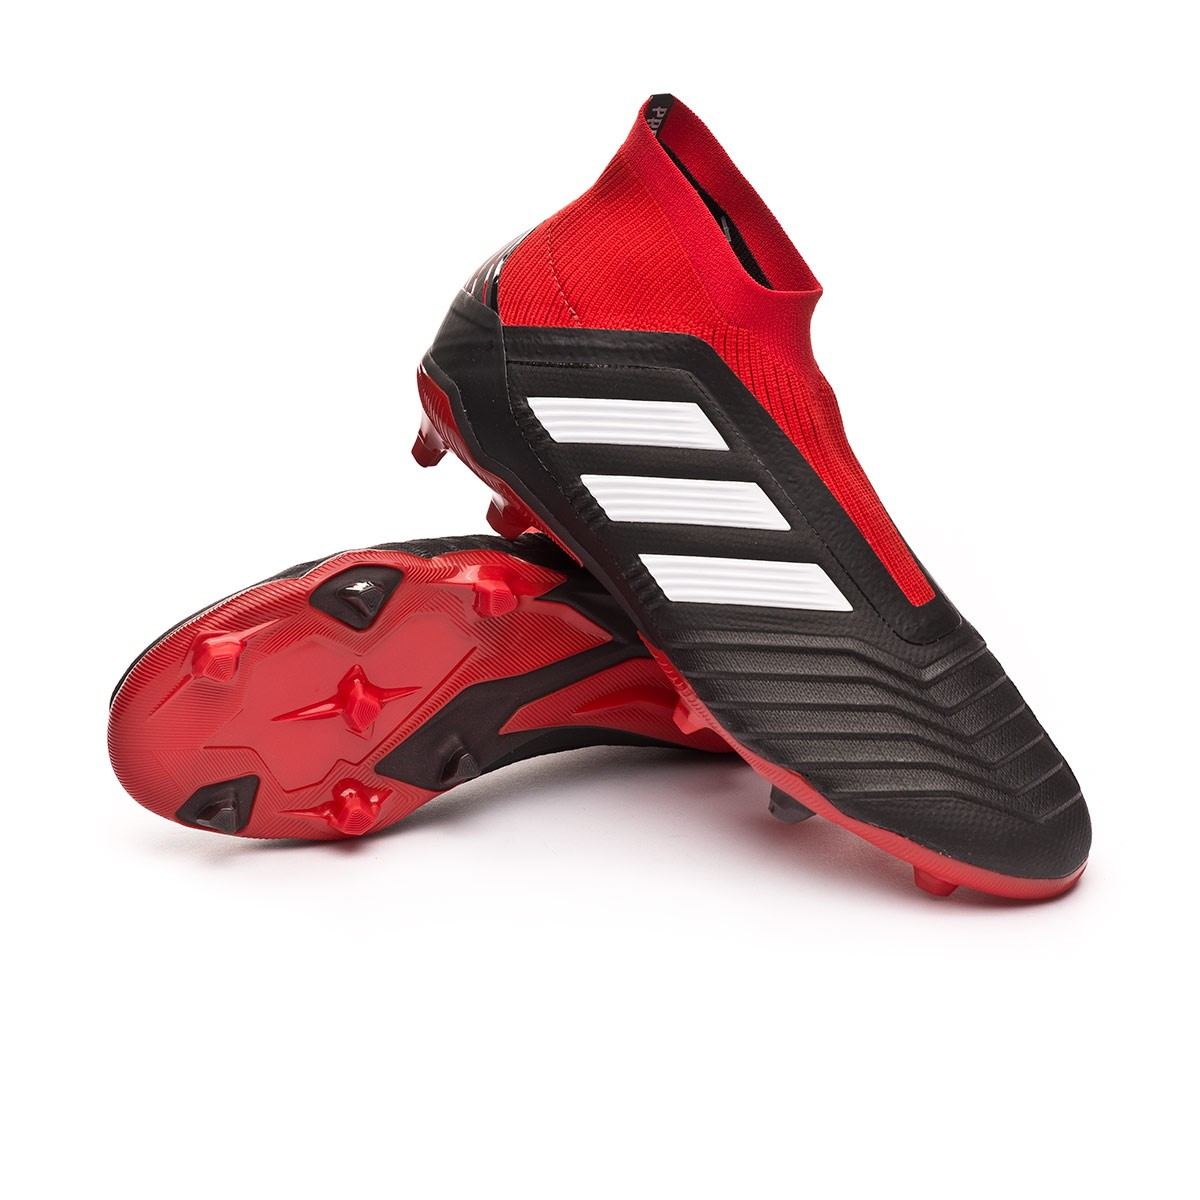 2557f6fc3 Football Boots adidas Kids Predator 18+ FG Core black-White-Red ...